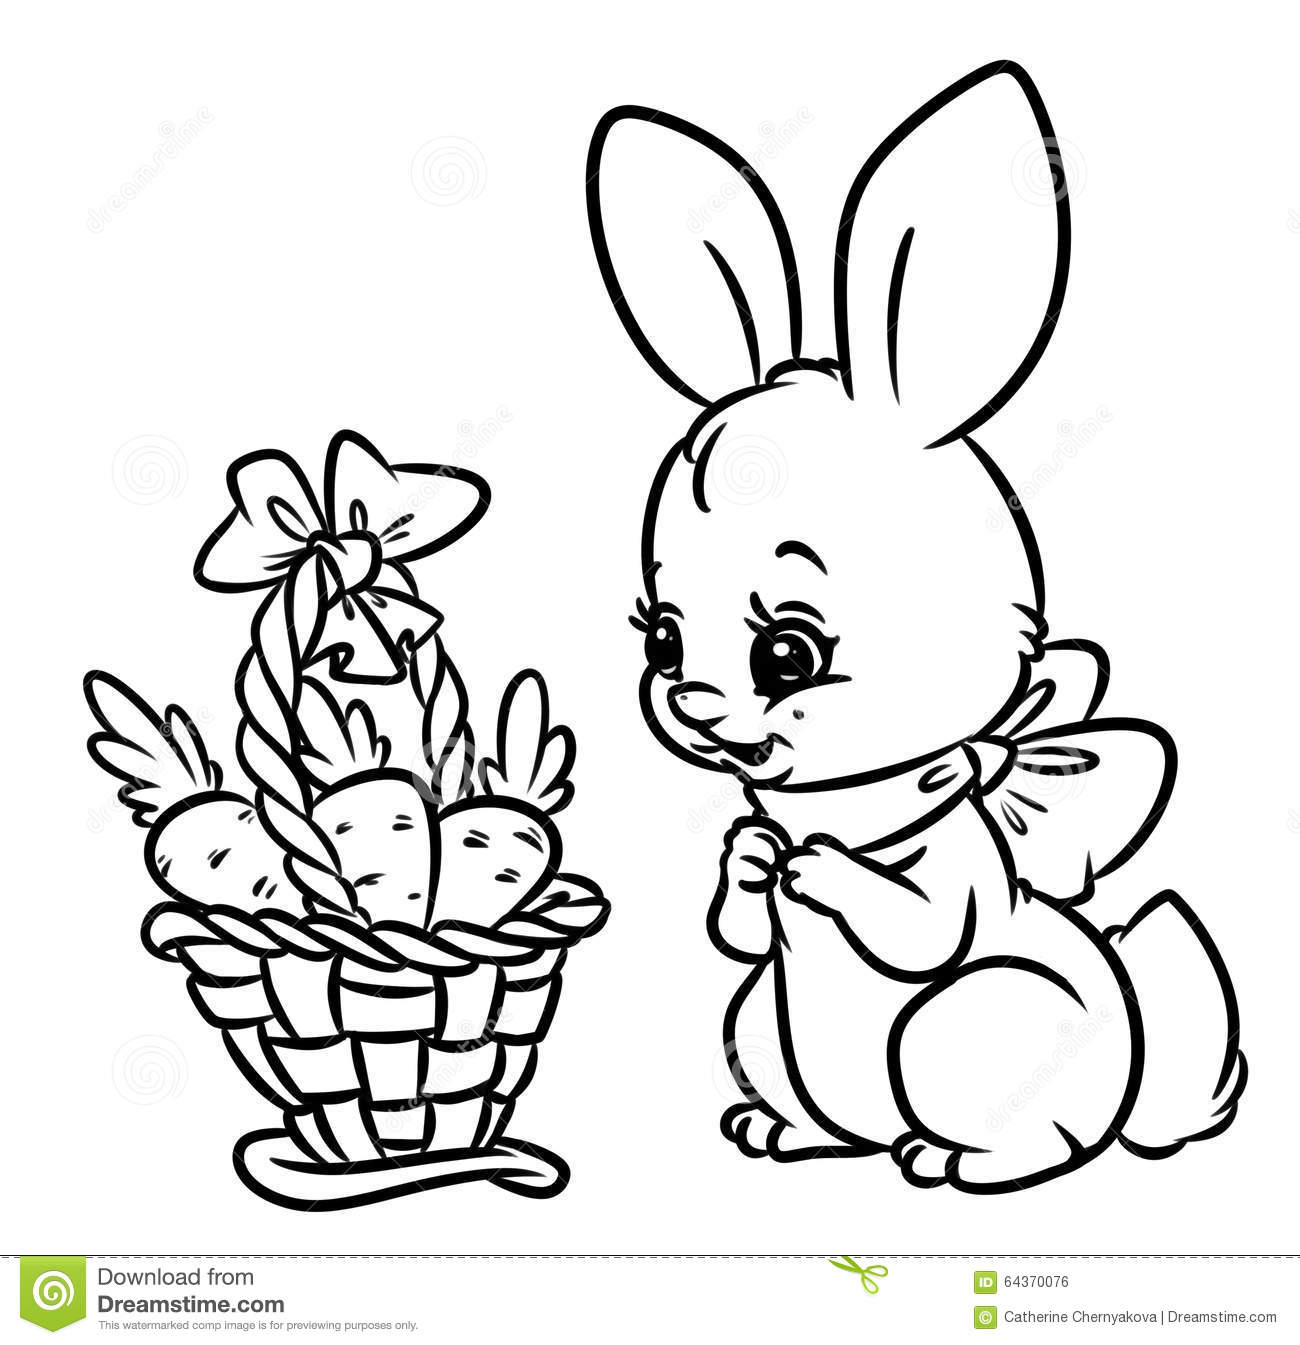 Rabbit eating a carrot coloring pages  Hellokidscom